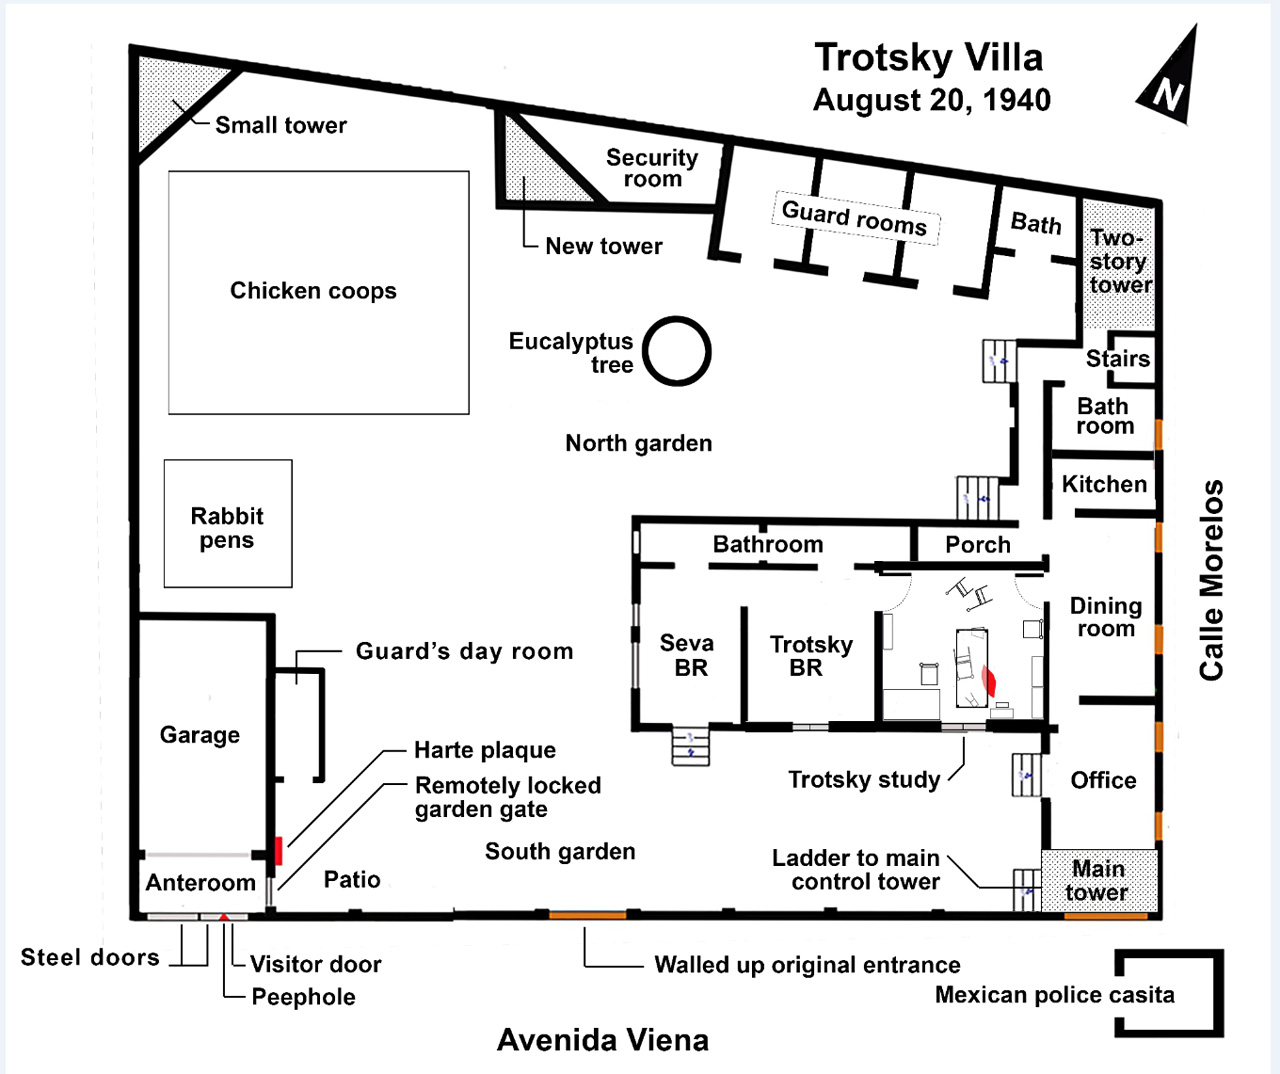 Trotsky Compound 1940 Assassin Wiring Diagram Photo From Isaac Don Levine Mind Of An 1959 The Negative Is Flipped In Book I Have Mirrored It Correctly This After Bought